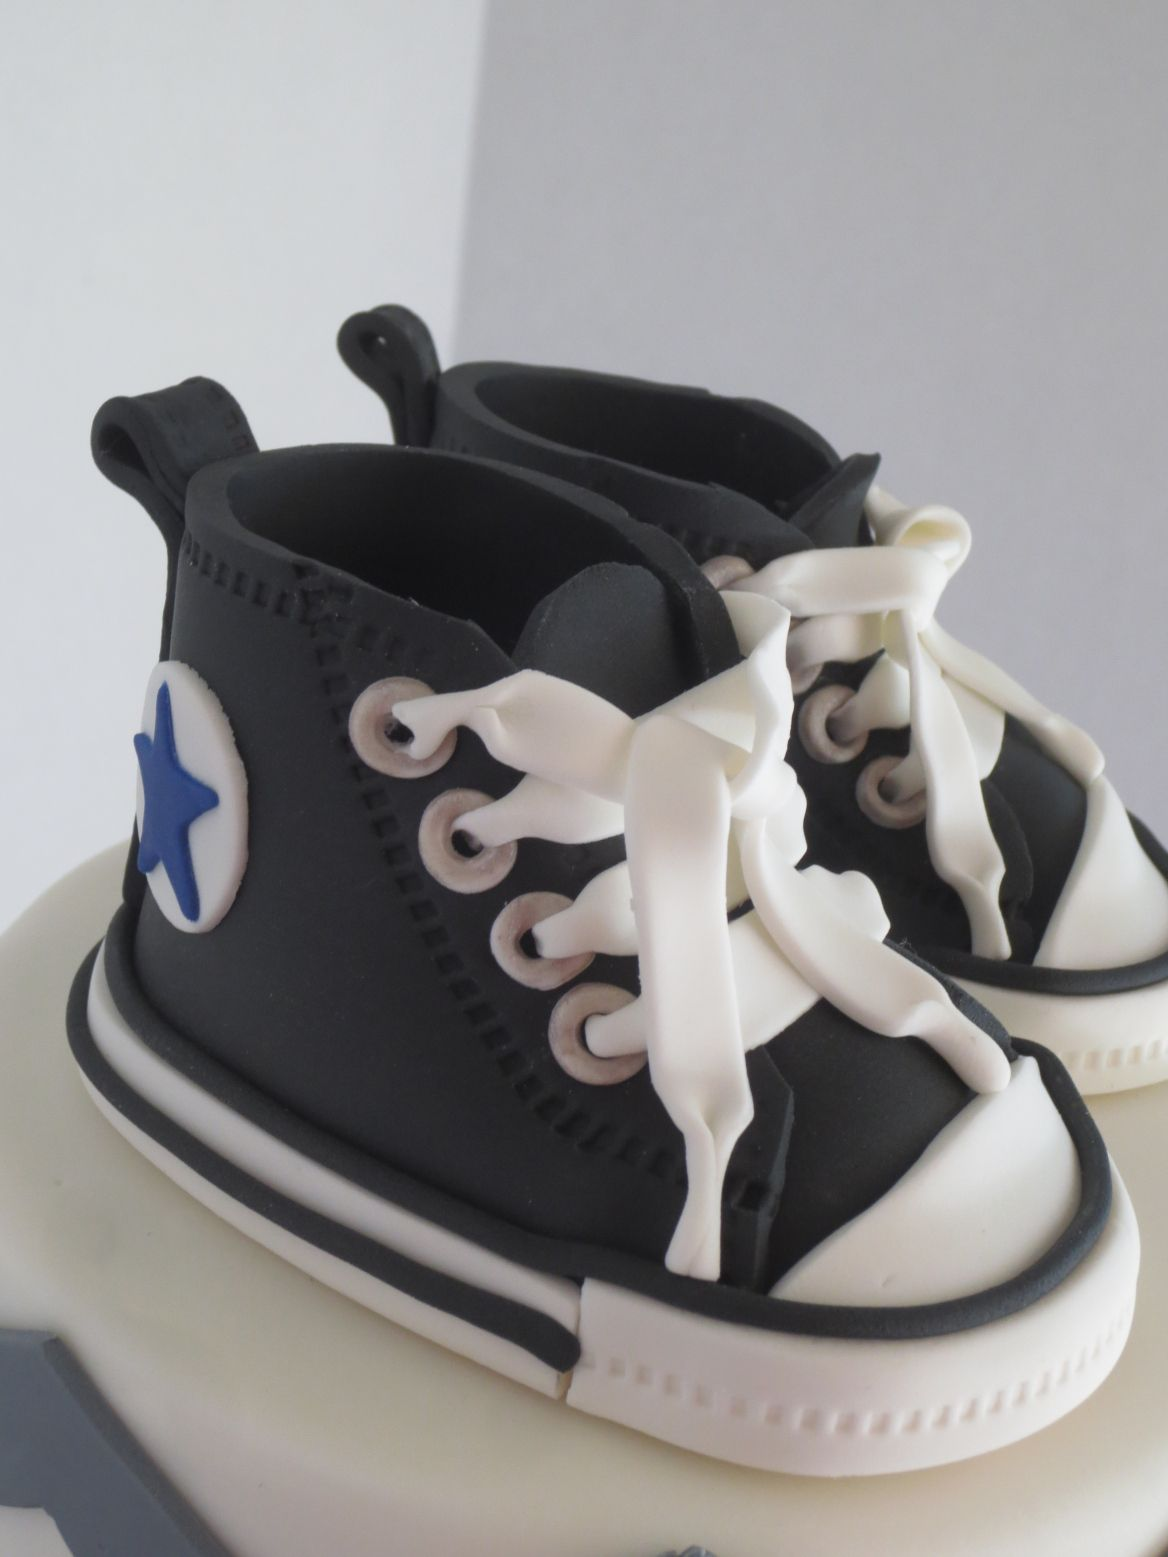 tolerancia Generador Circunferencia  Chevron Baby Shower Cake With Fondant Converse Shoes – Byrdie Girl Custom  Cakes | Baby shoes pattern, Fondant baby shoes, Baby shoes